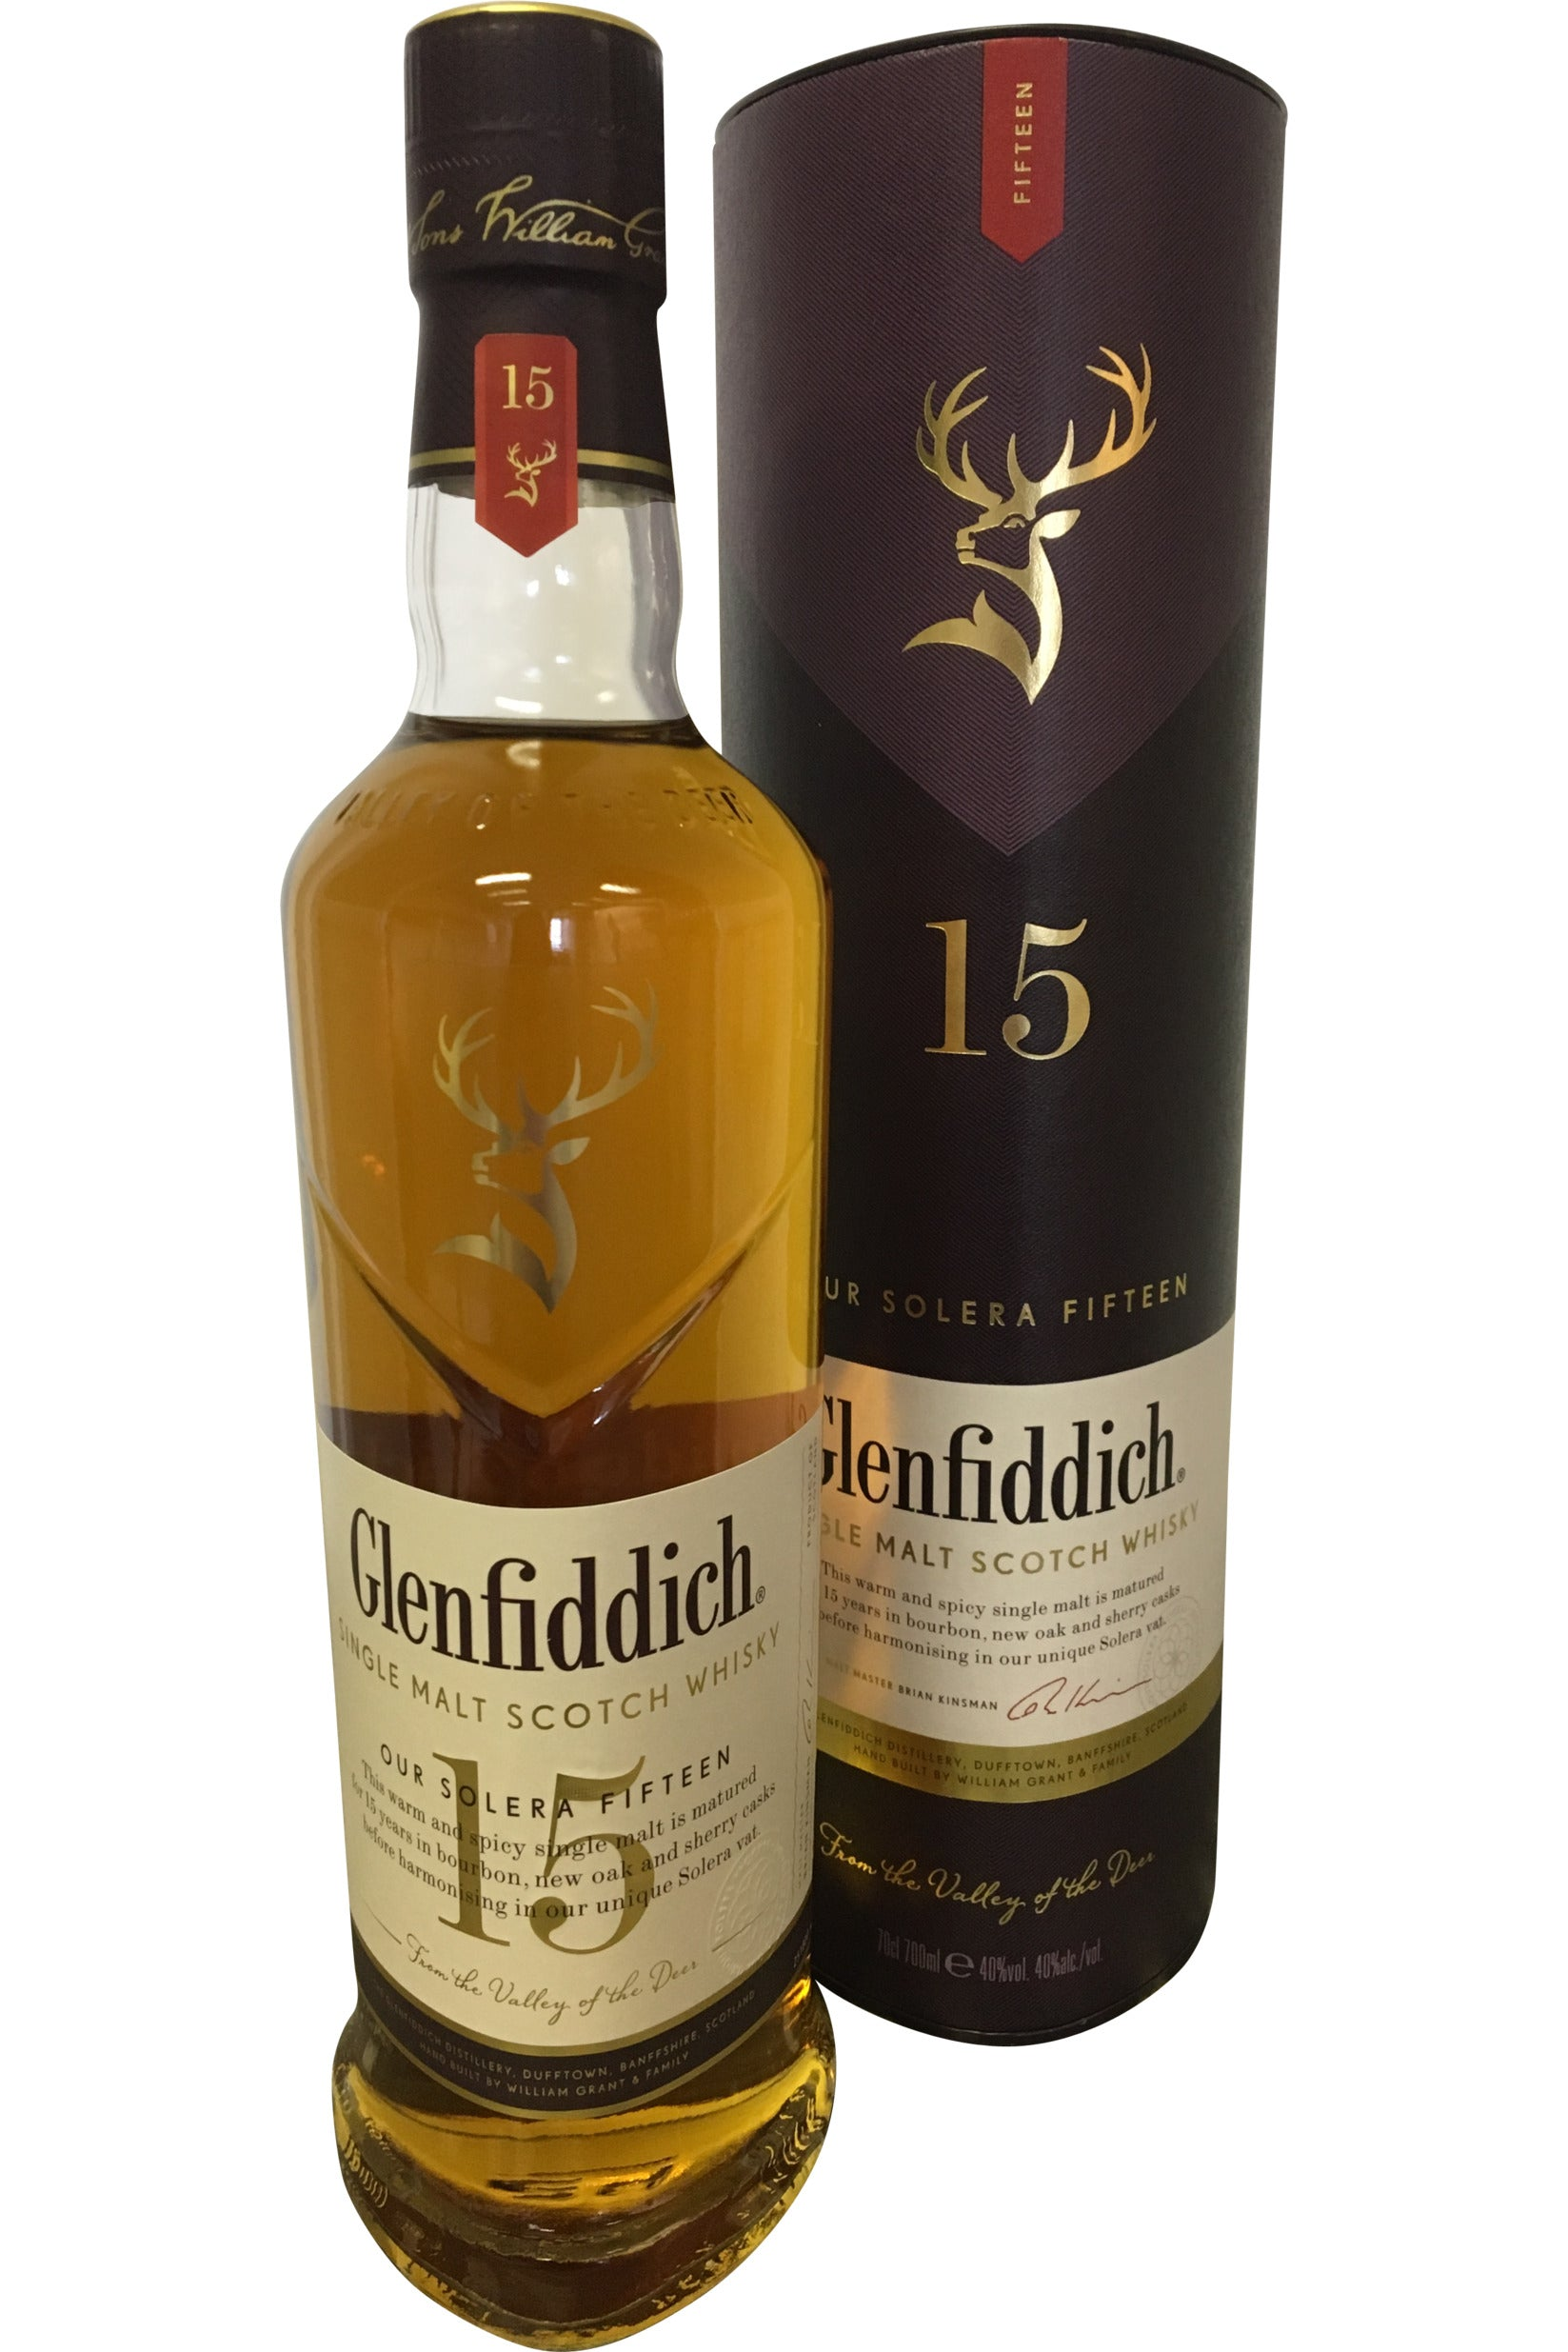 Glenfiddich 15 Year Old Solera Whisky - 40% 700ml